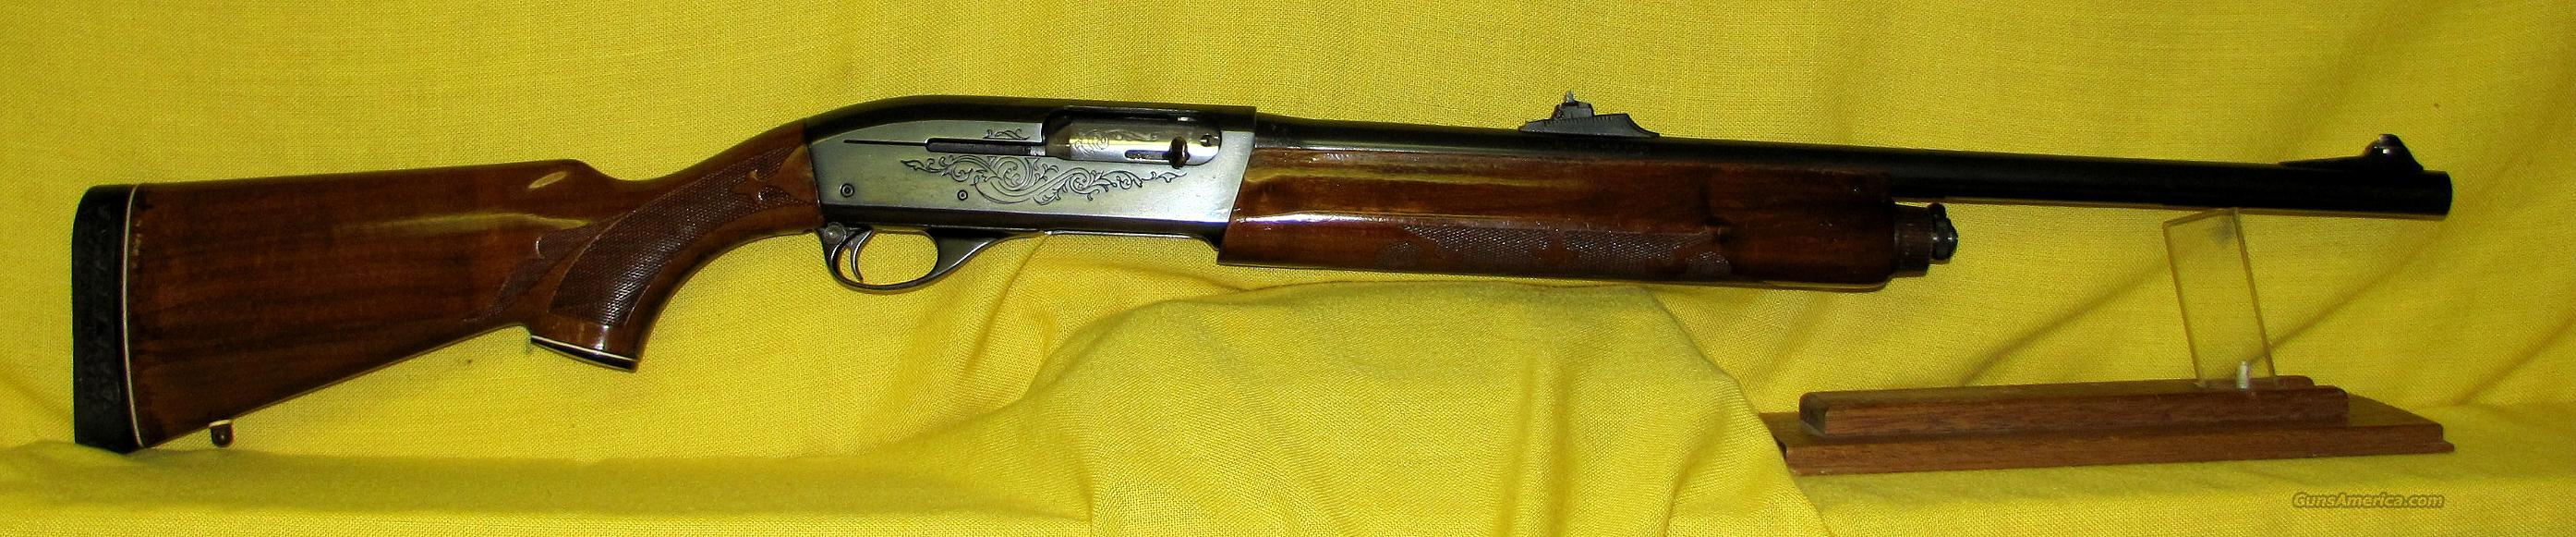 "REMINGTON 1100 12GA 22""BBL SLUG GUN  Guns > Shotguns > Remington Shotguns  > Autoloaders > Hunting"